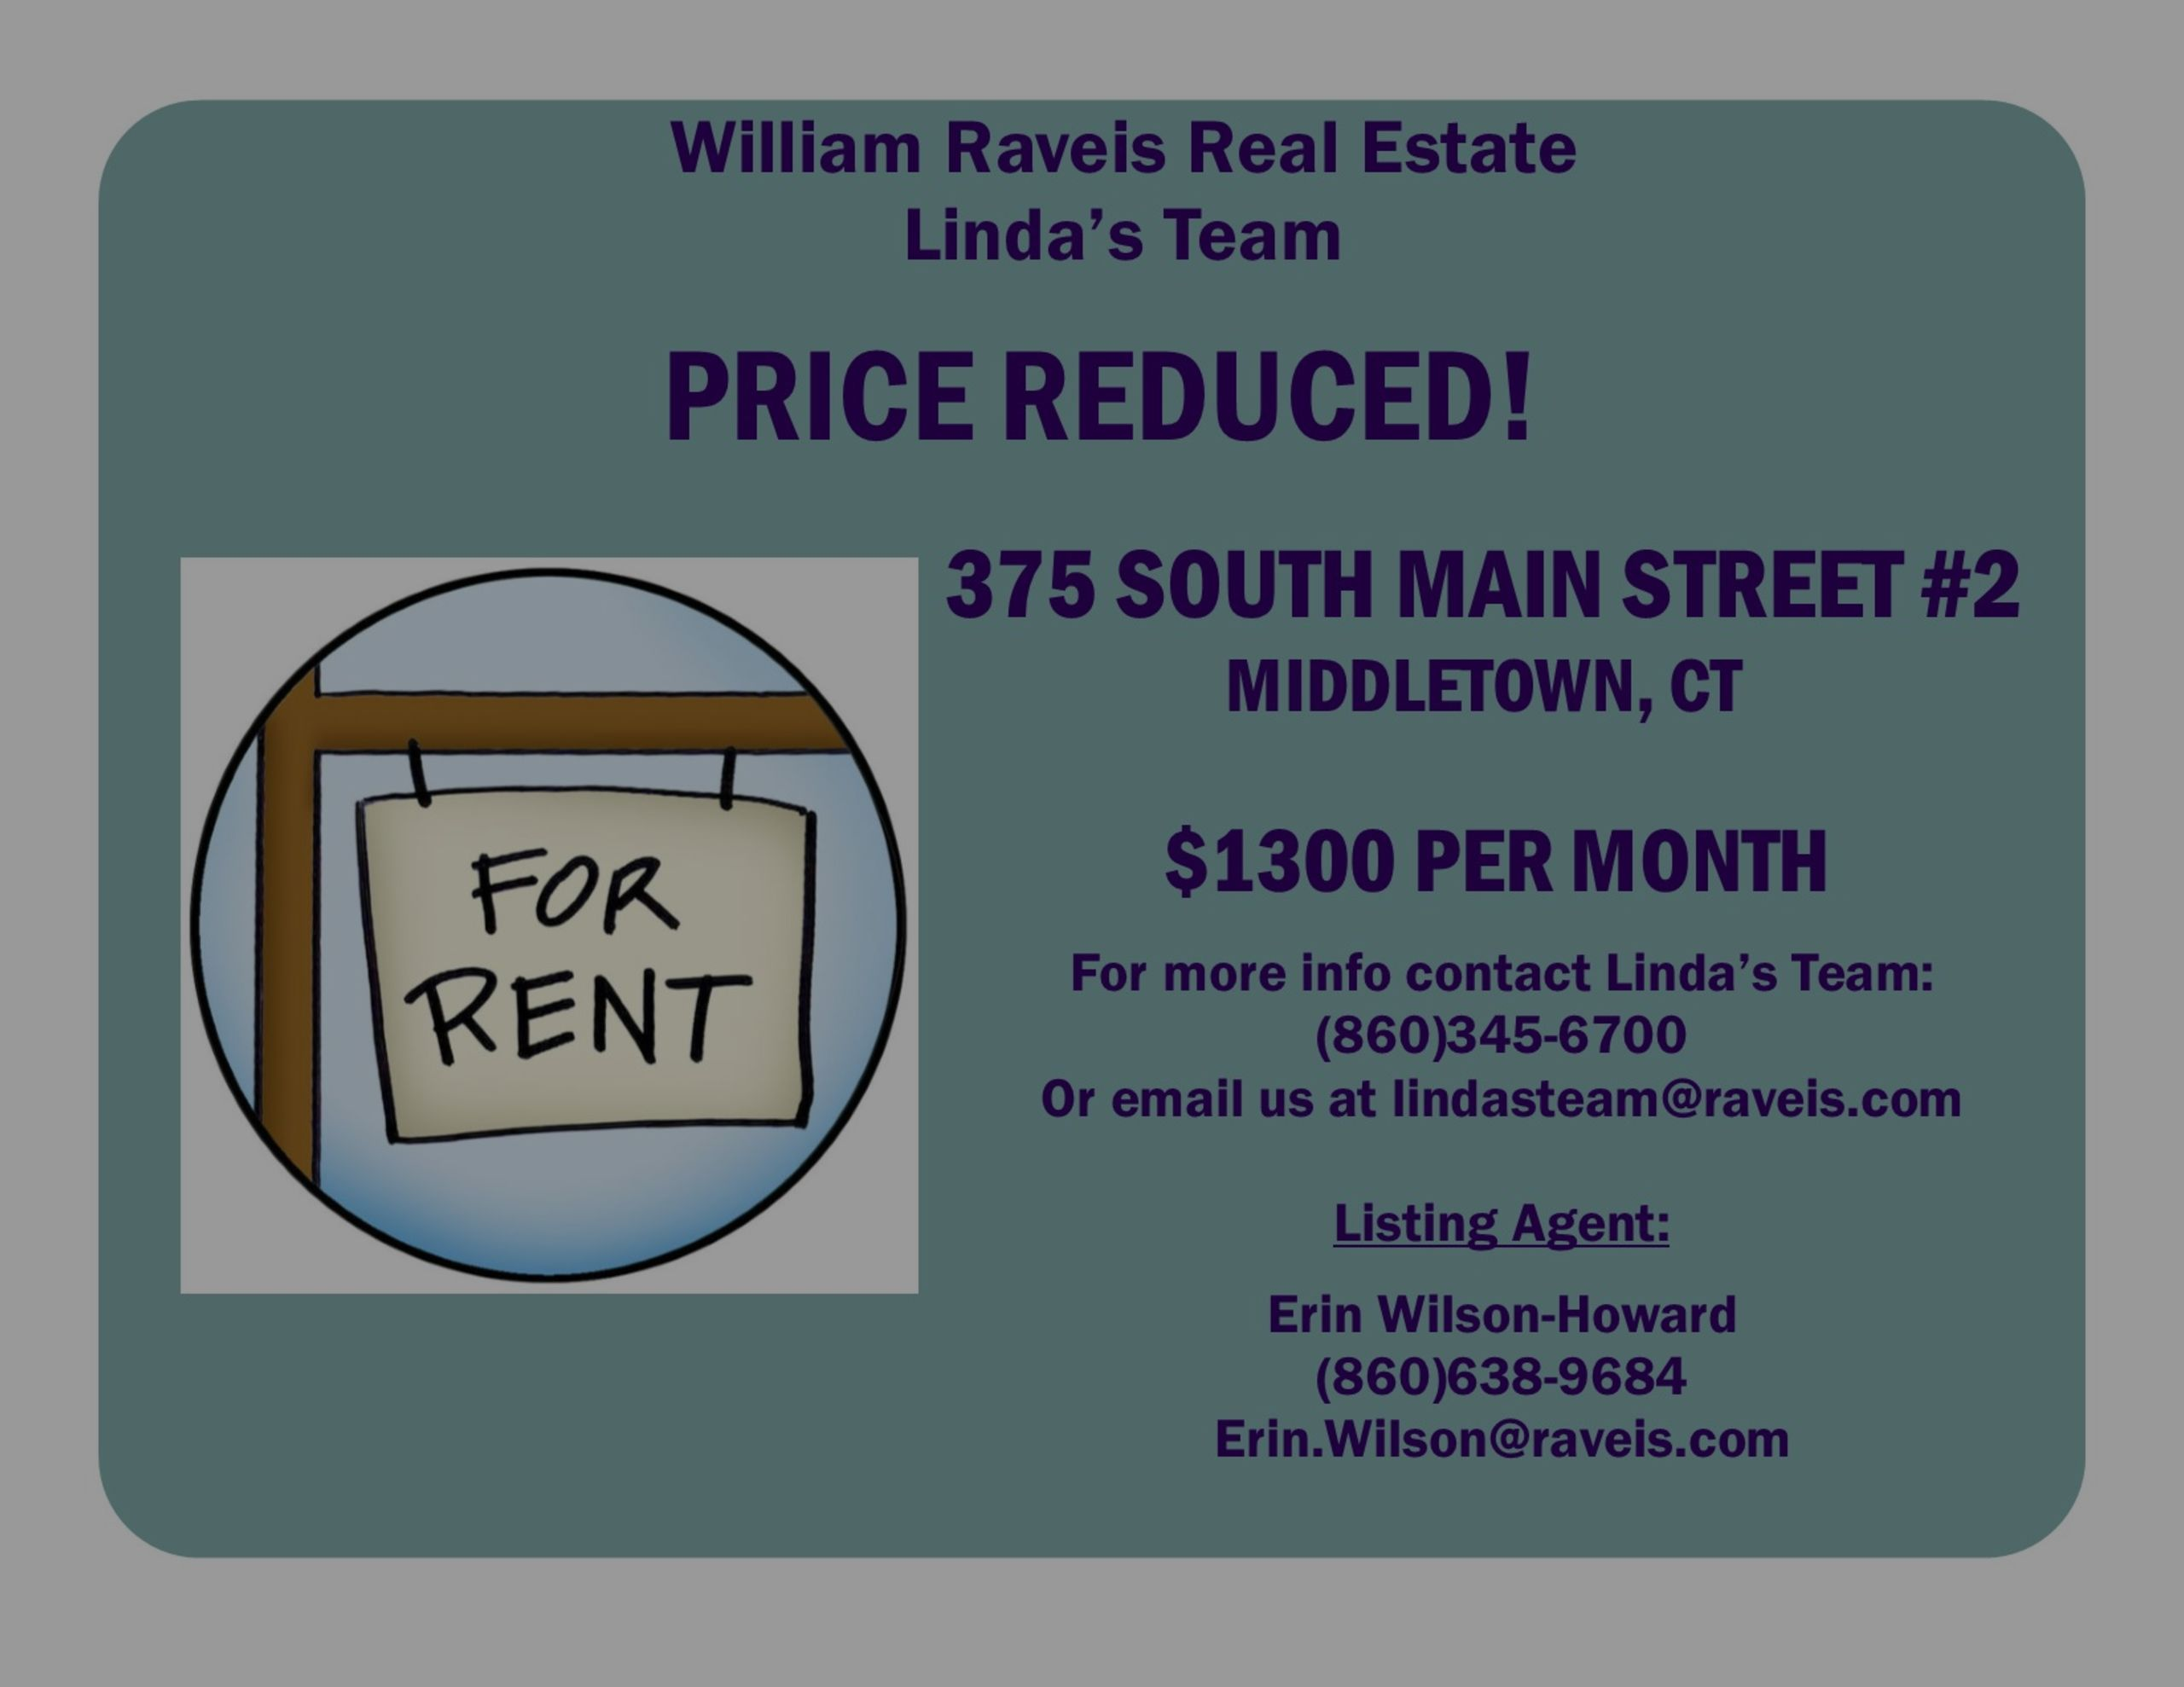 PRICE REDUCED RENTAL IN MIDDLETOWN!